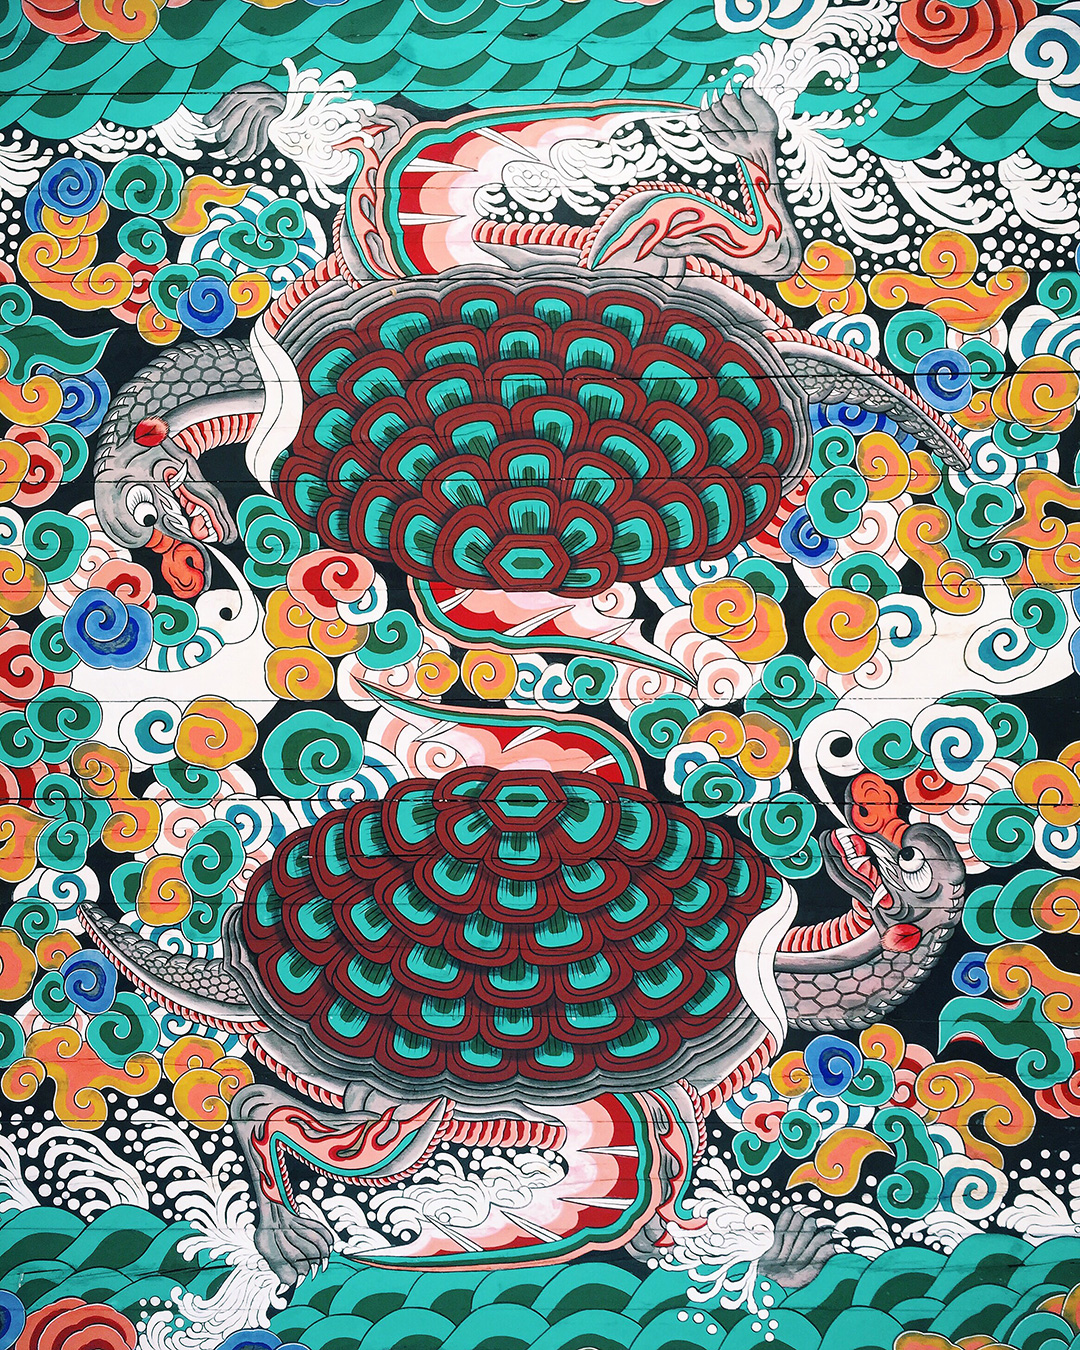 Ceiling painting at the entry gate of Gyeonbokgung Palace. The turtle represents longevity in Korean culture.